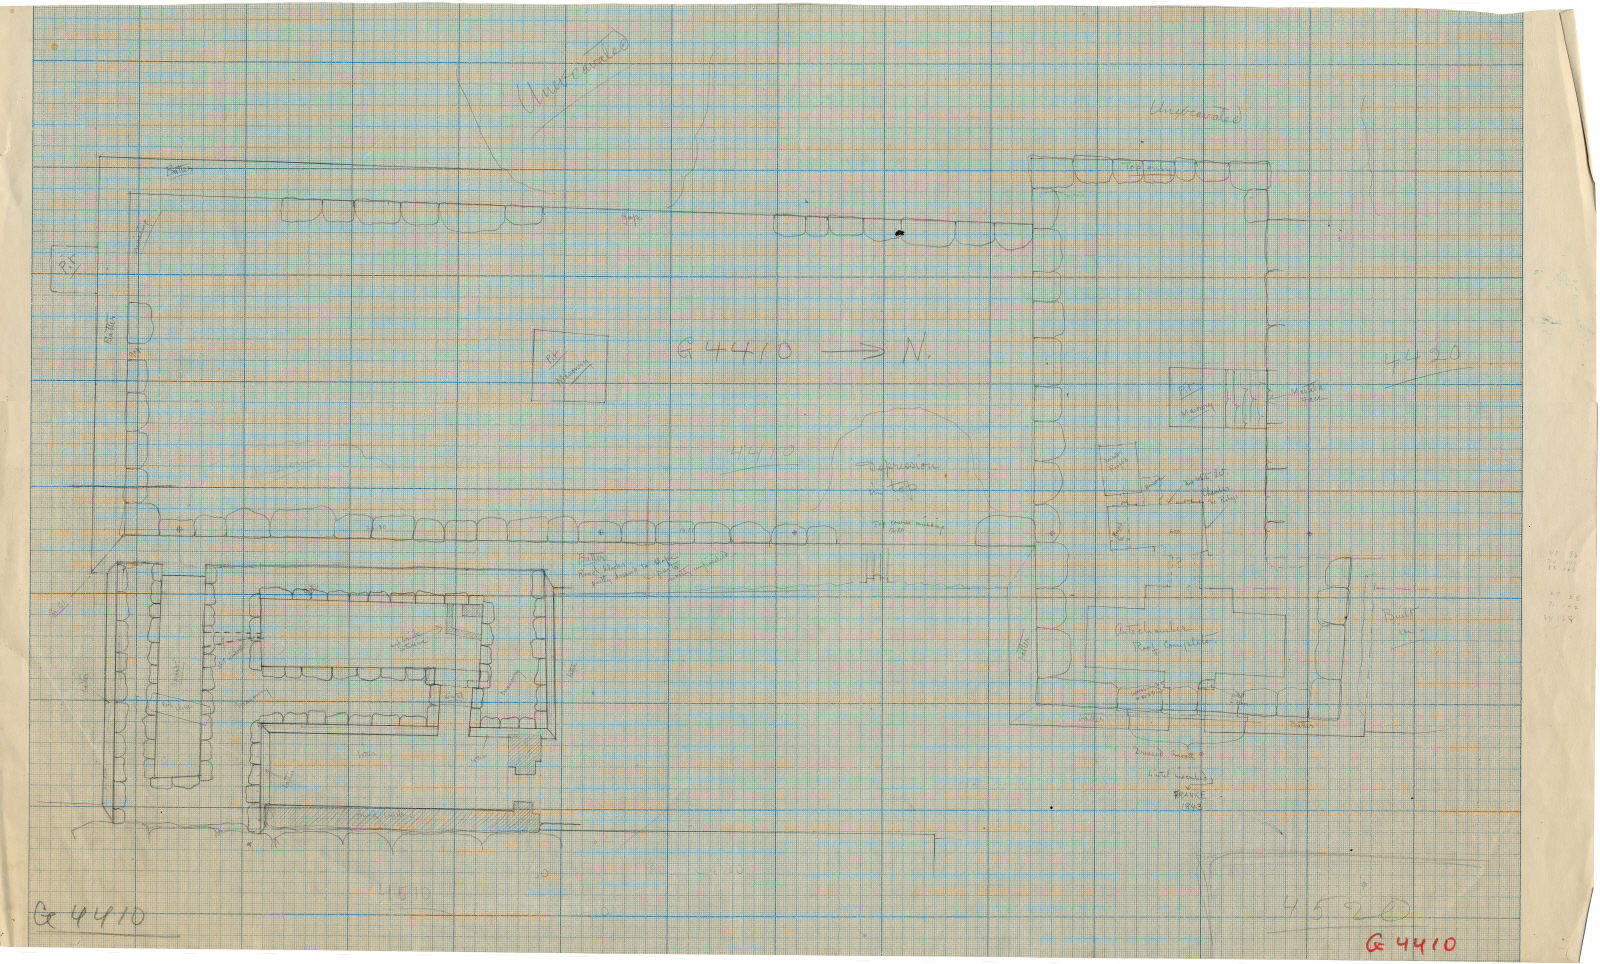 Maps and plans: Plan of G 4410, with positions of G 4411, G 4420, G 4510, G 4520